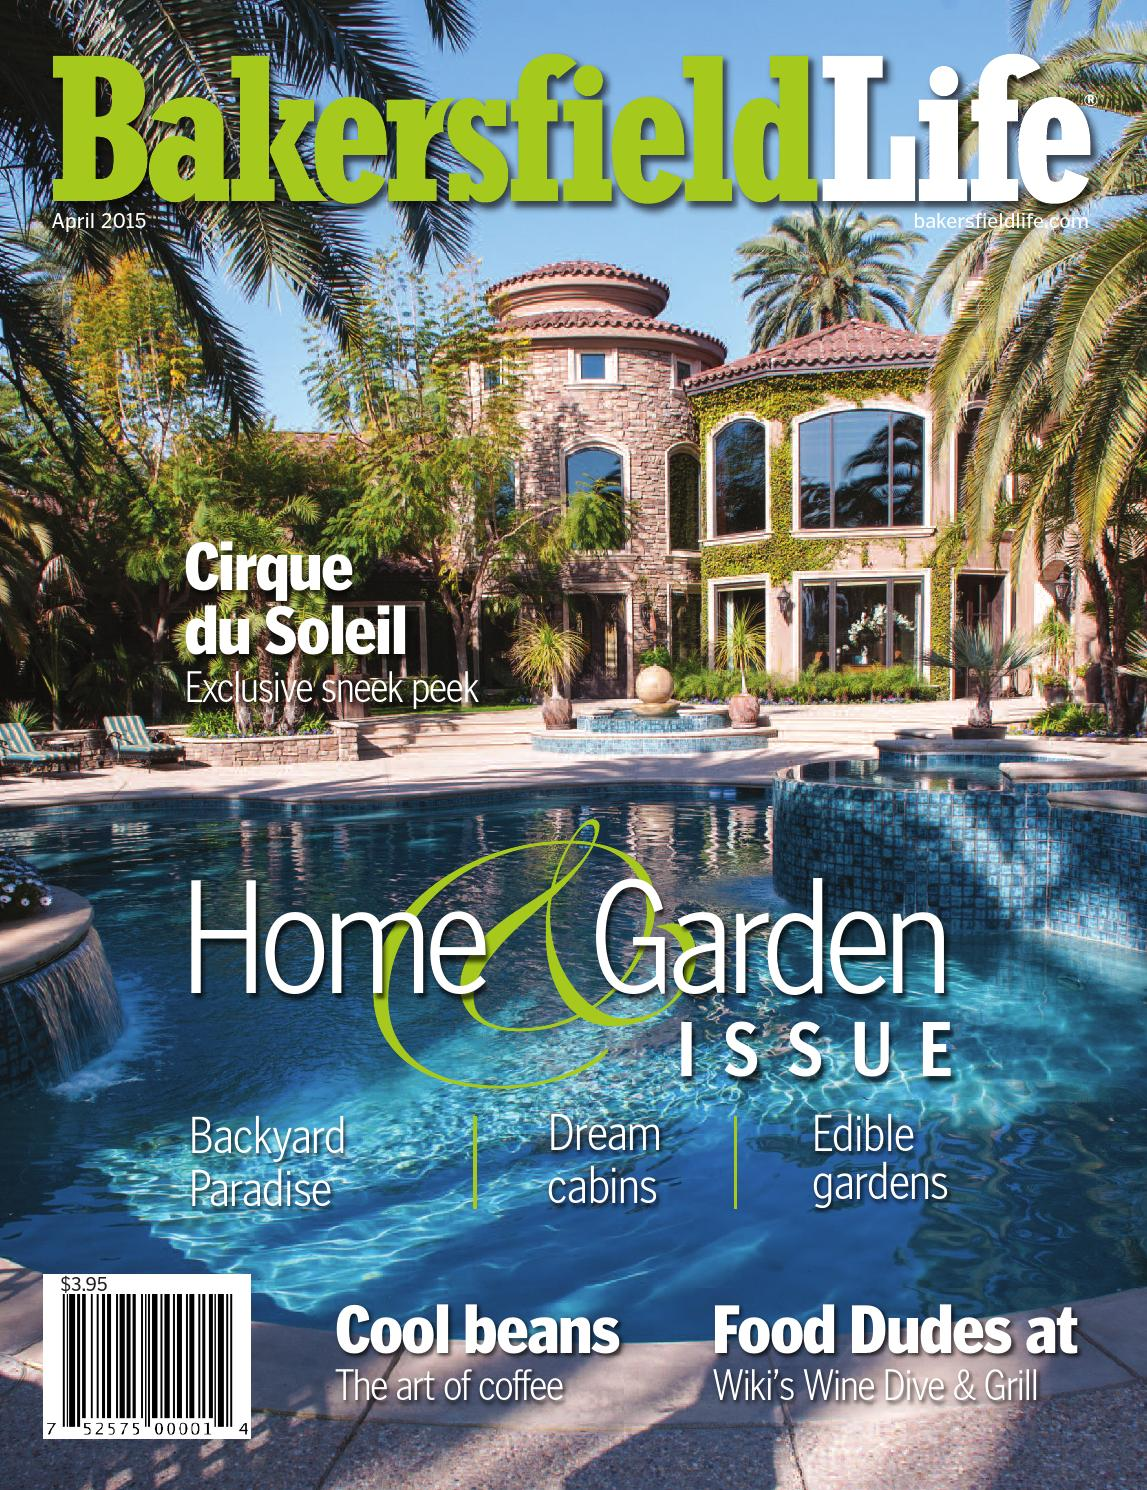 Bakersfield life magazine april 2015 by tbc media for Bakersfield home magazine